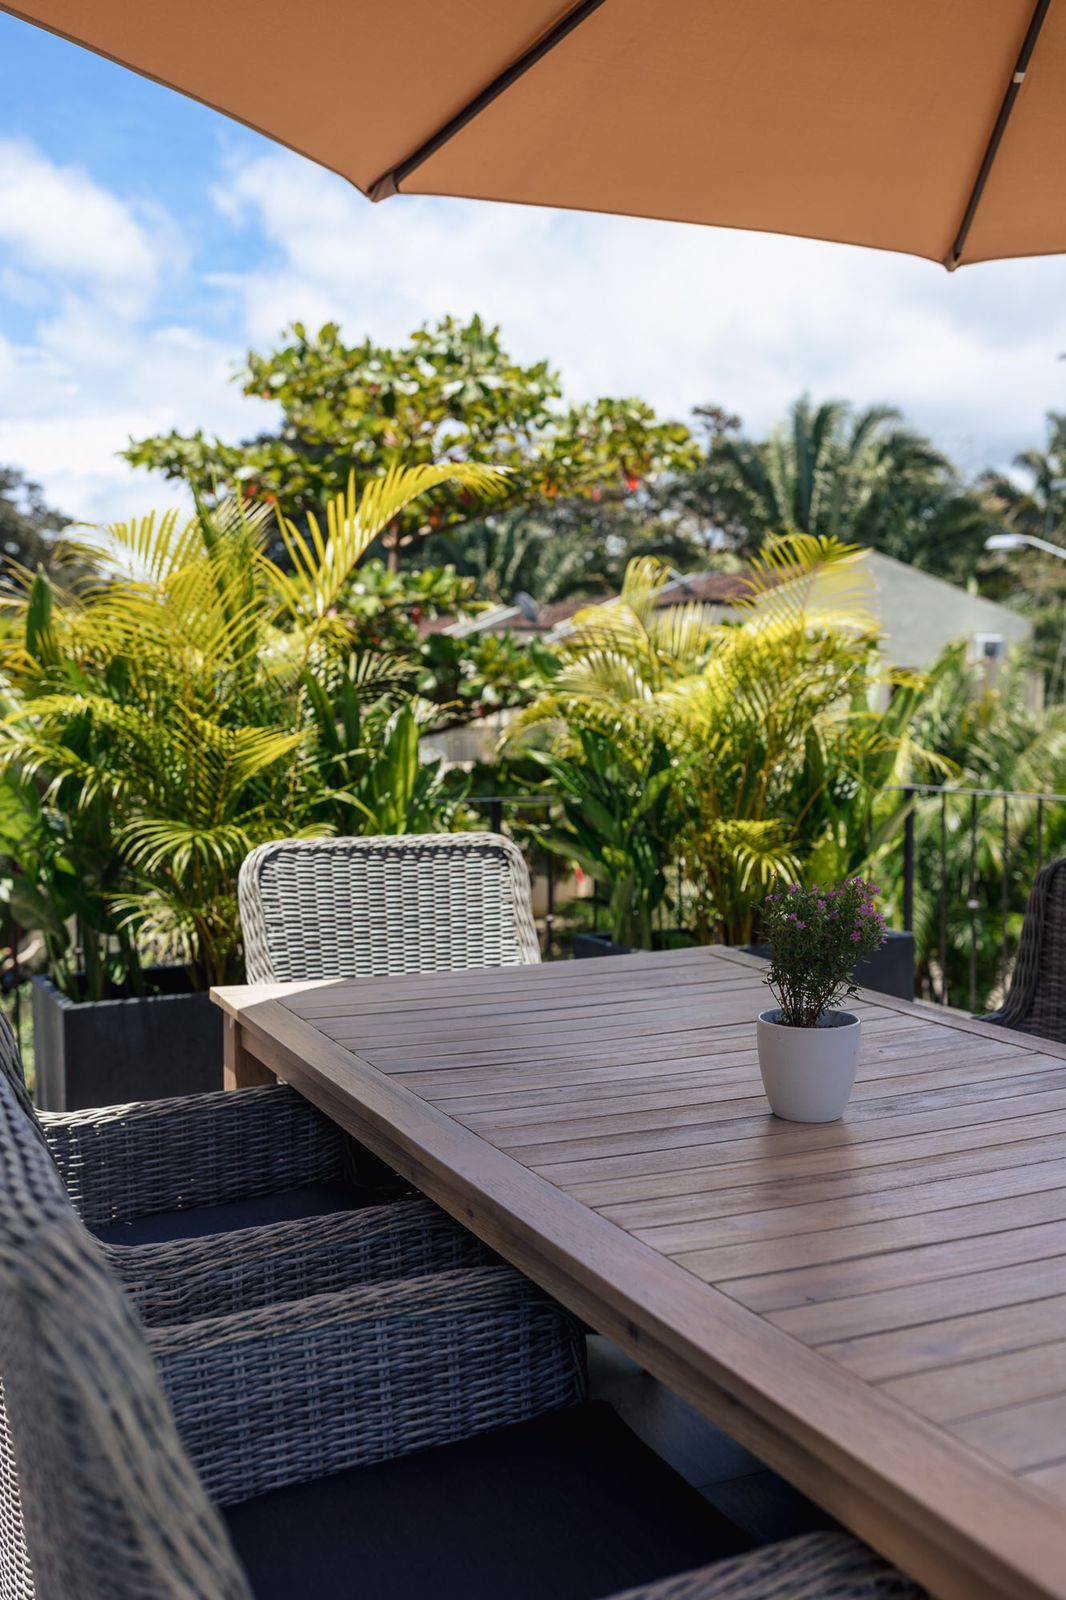 greenery as a privacy screen on the patio